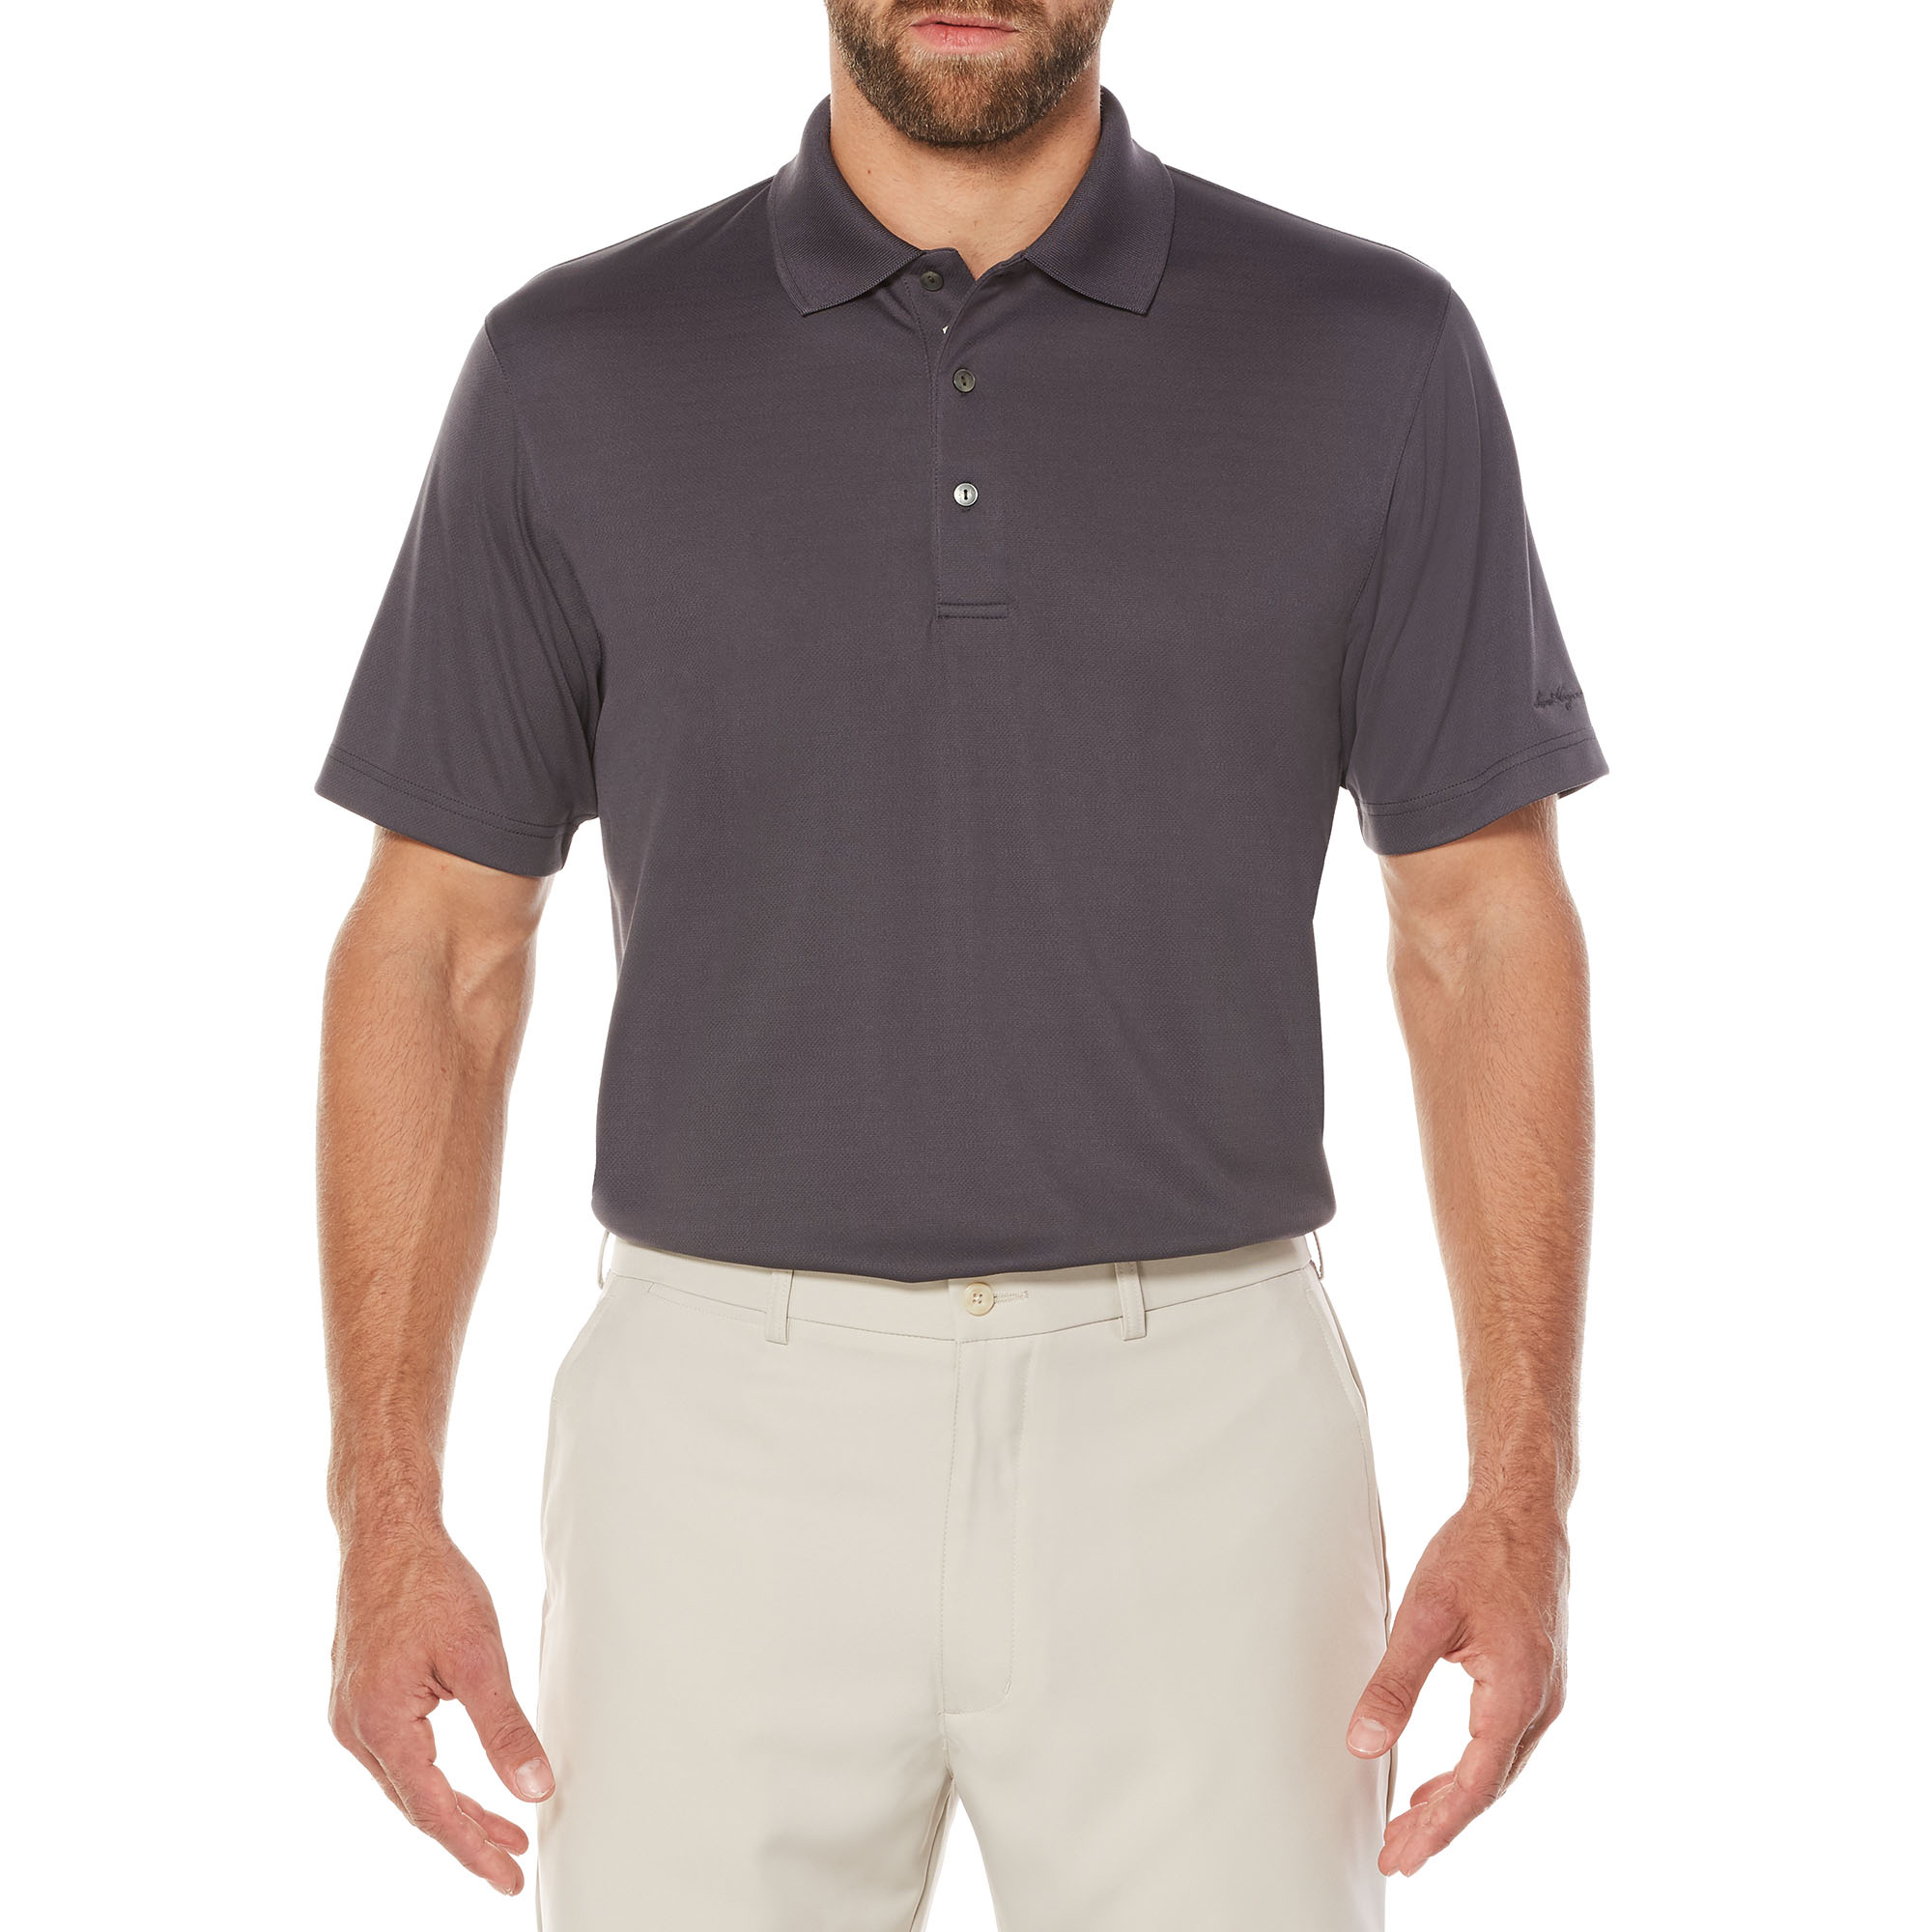 Men's Performance Short Sleeve Solid Golf Polo Shirt